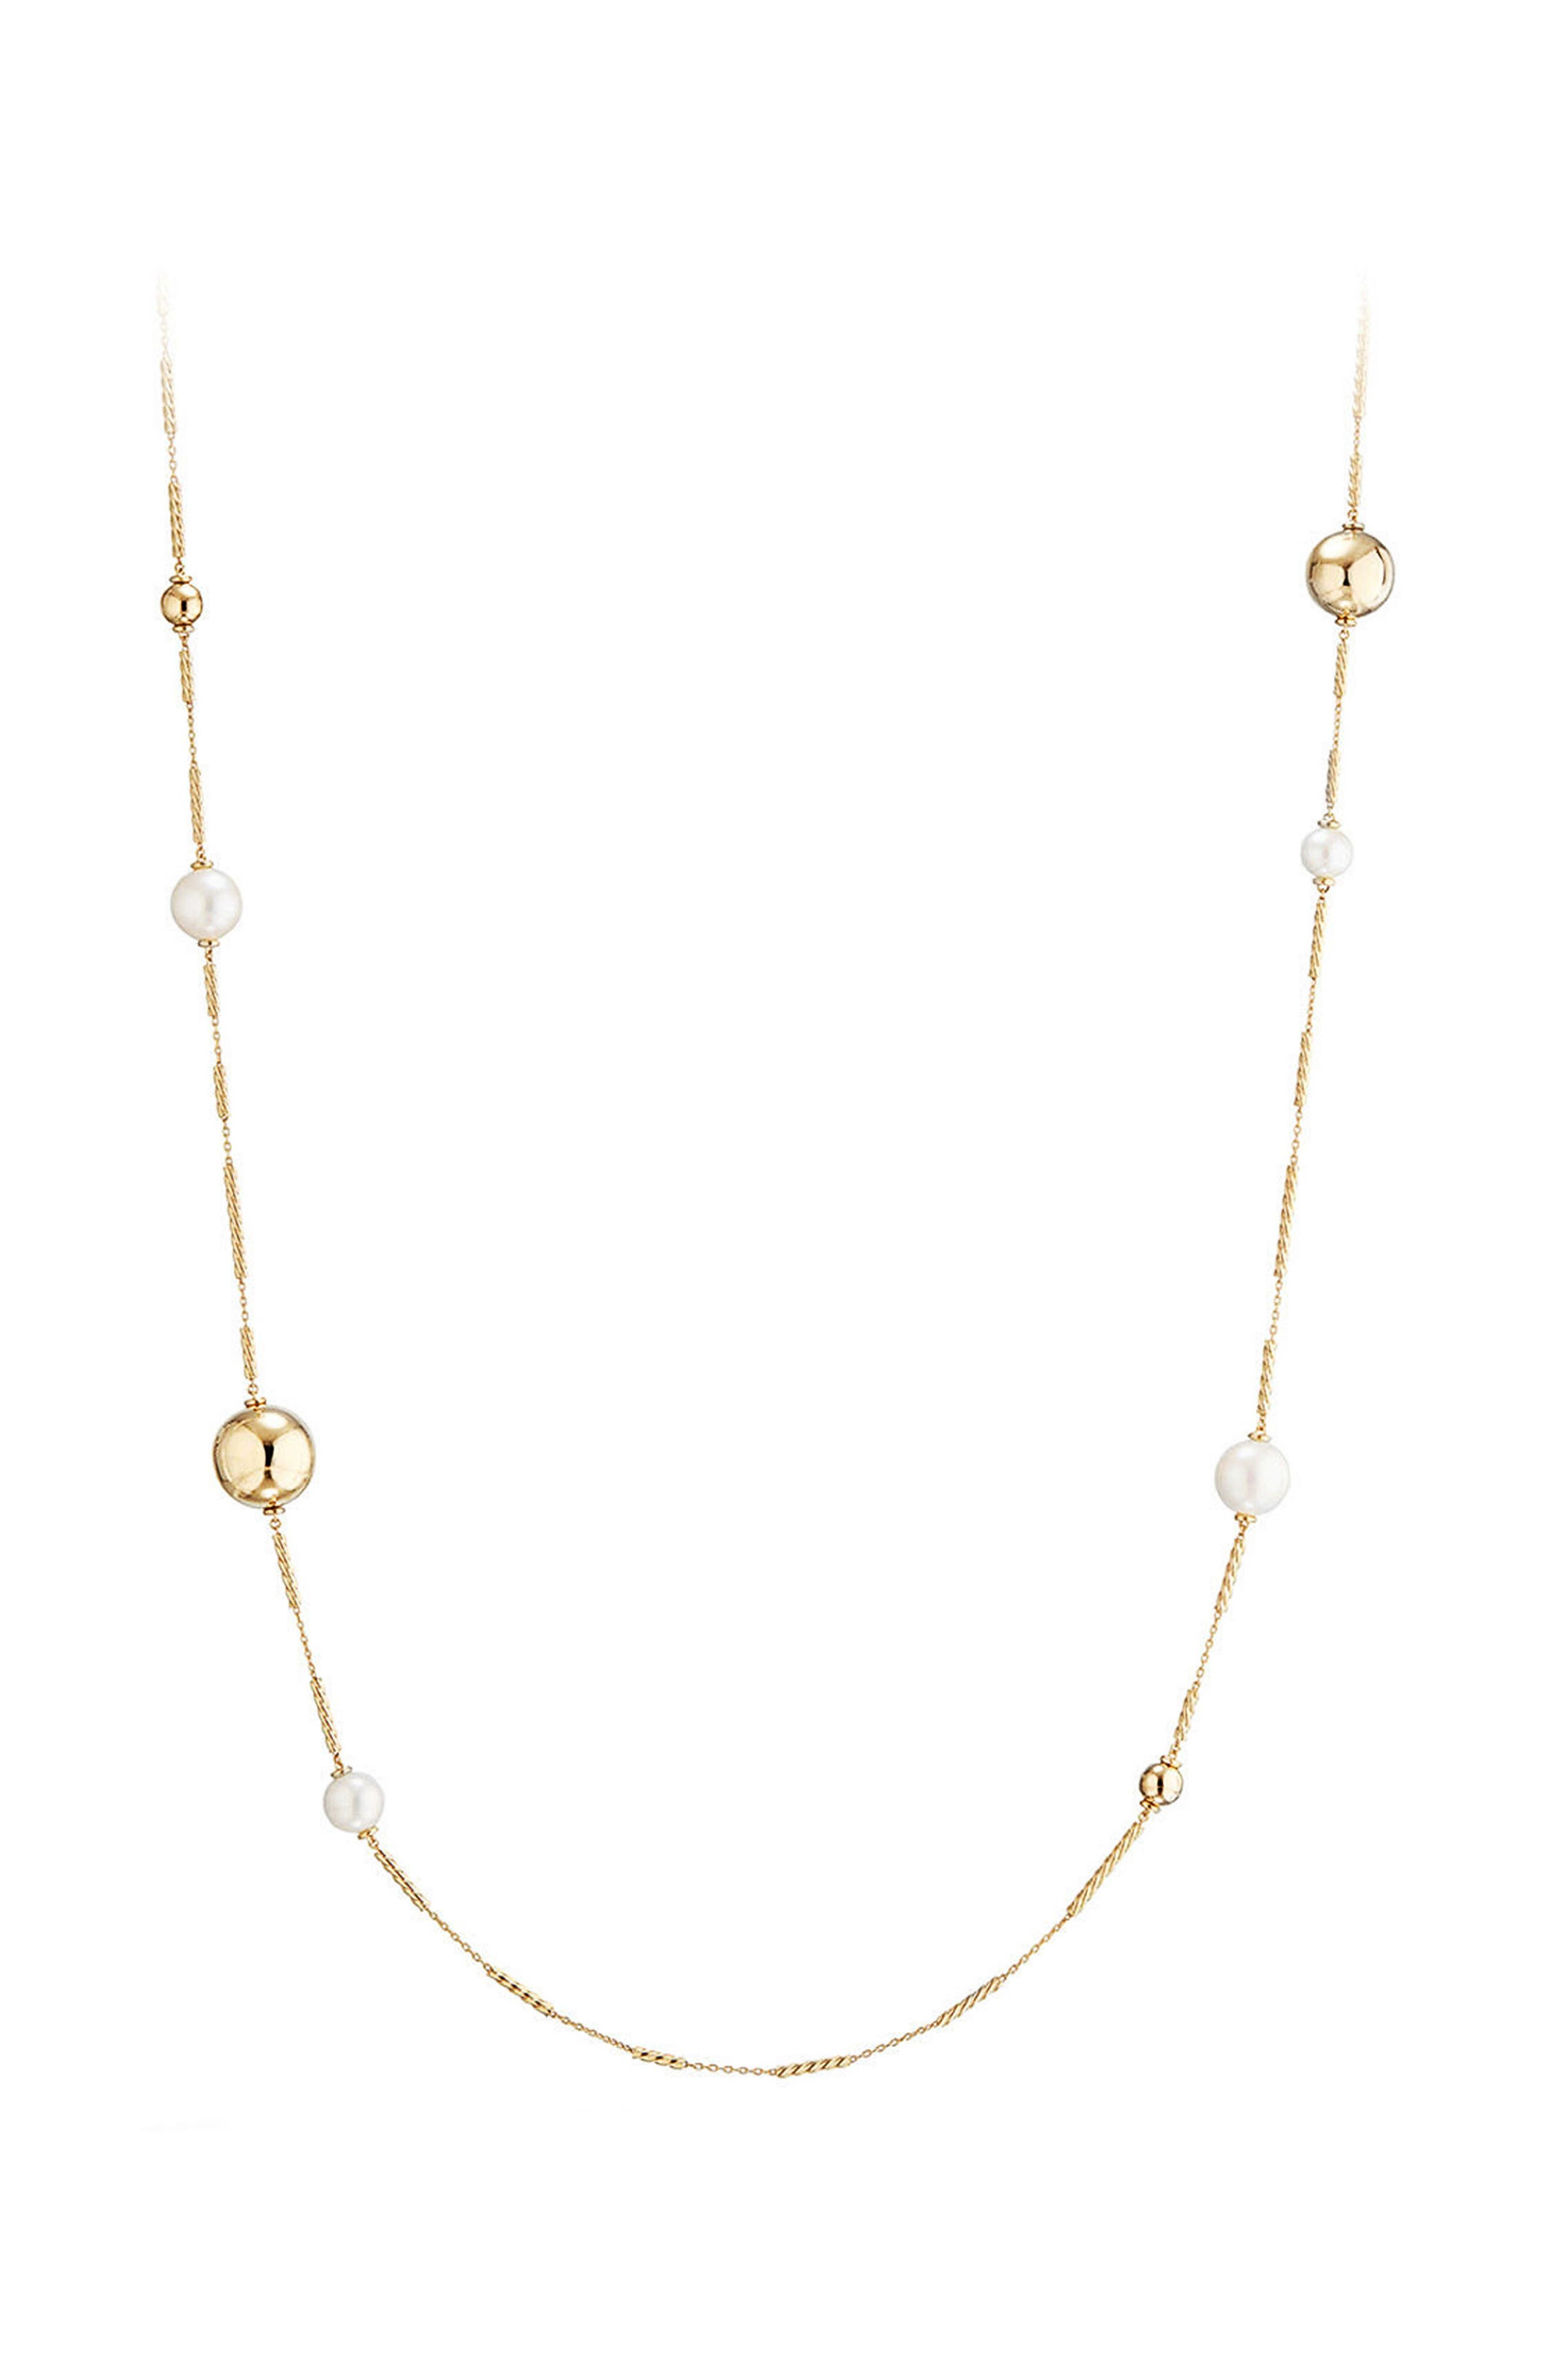 Solari Long Station Necklace with Pearls in 18K Gold,                         Main,                         color, PEARL